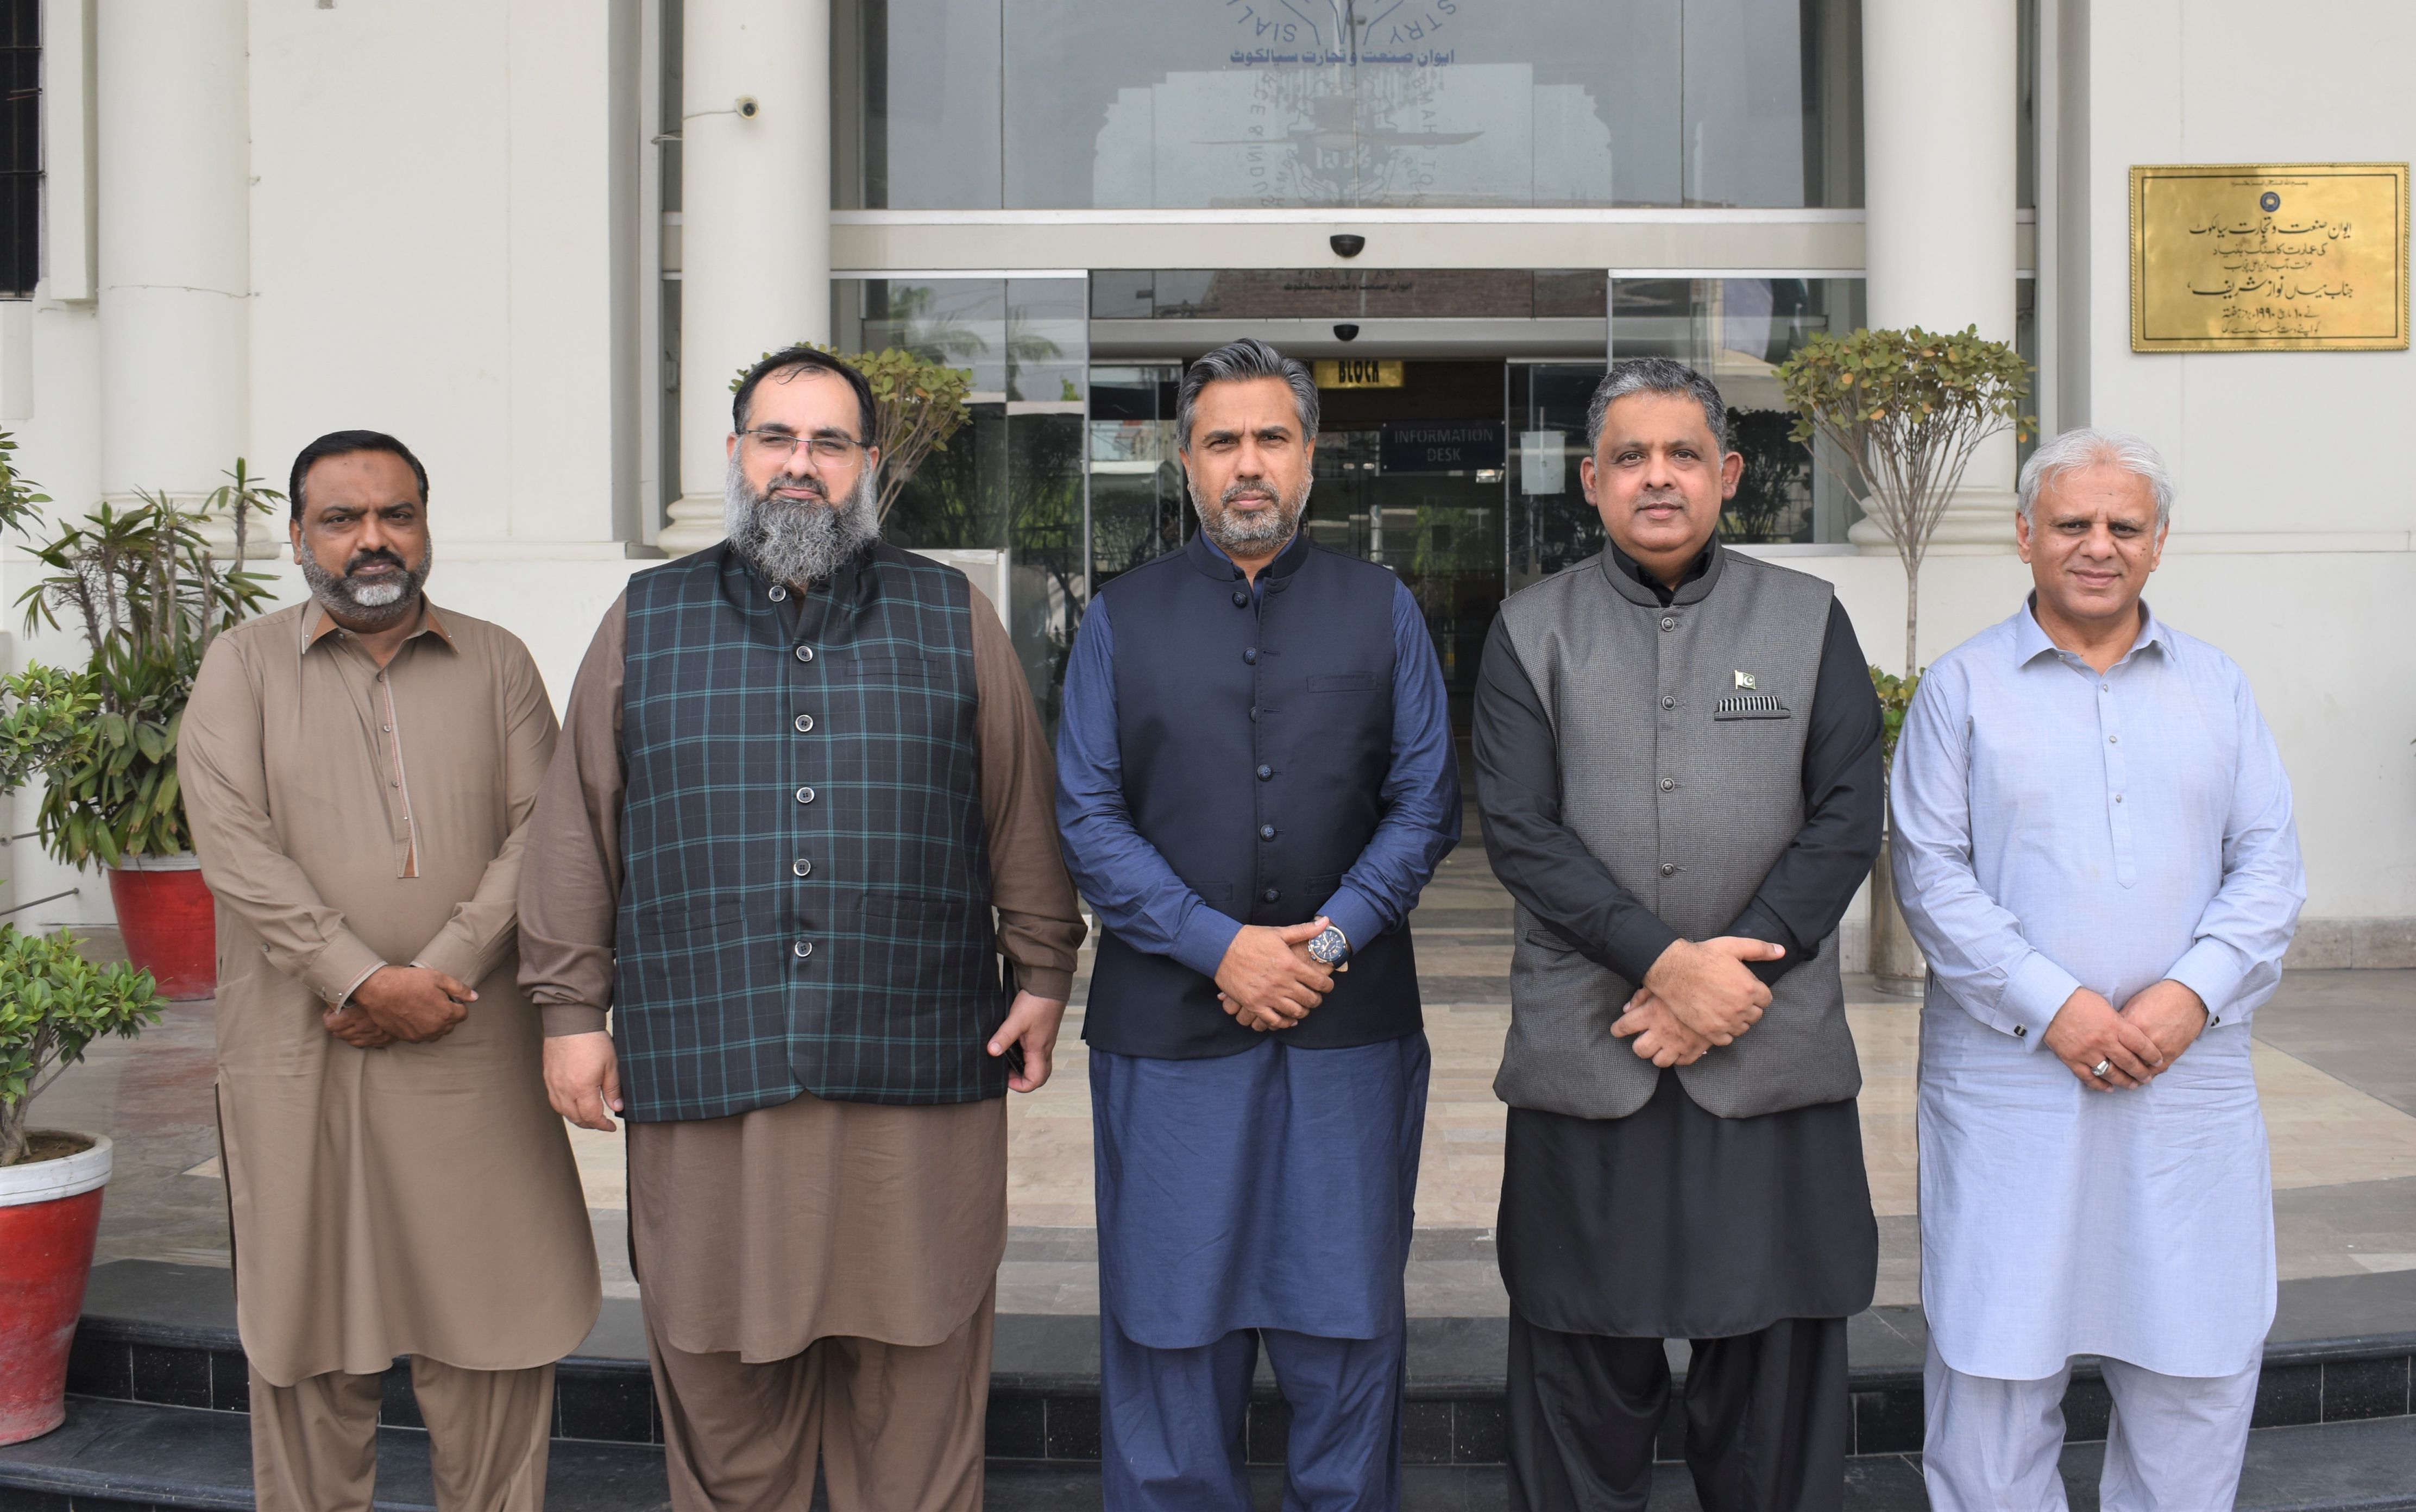 On August 20, 2021, H.E. Rizwan Saaed Sheikh, Ambassador of Pakistan to Organization of Islamic Cooperation (OIC) in Jeddah called on Mr. Qaisar Iqbal Baryar, President, Mr. Khuram Aslam, Senior Vice President and Mr. Ansar Aziz Puri, Vice President, Sialkot Chamber of Commerce & Industry to discuss matters pertaining to Trade, Commerce and Investment in OIC Countries.